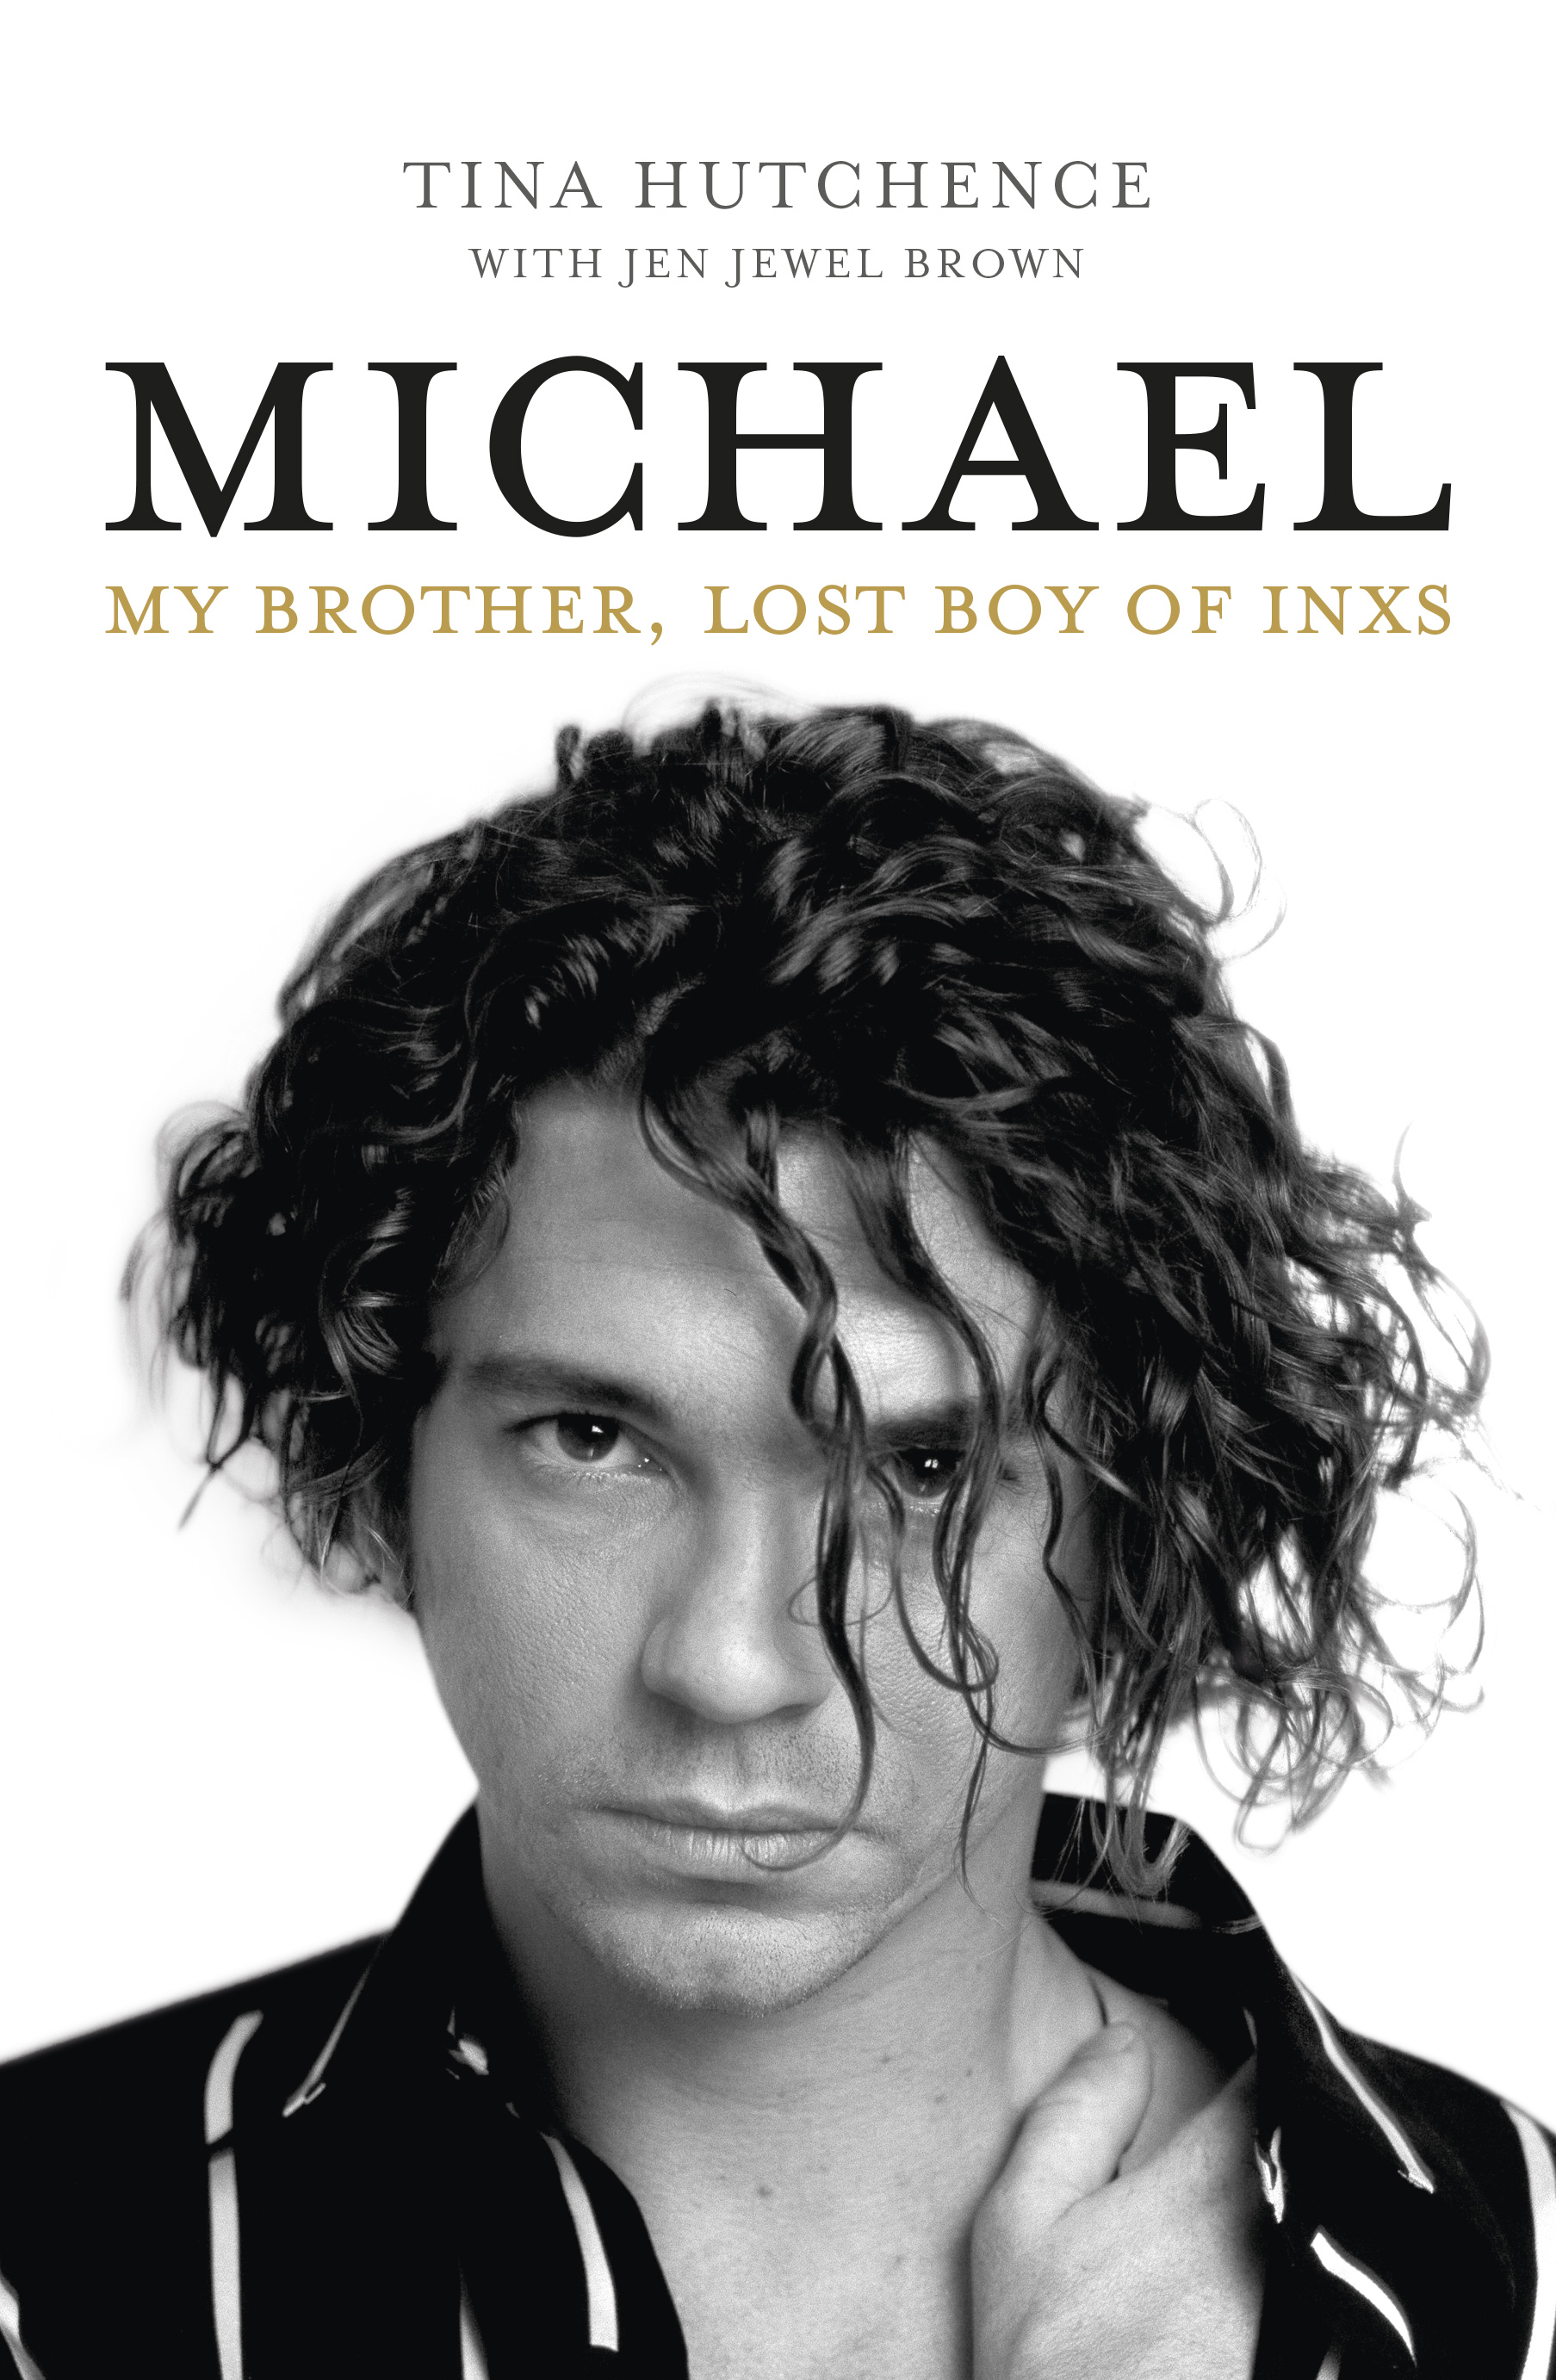 michael hutchence, inxs, tbi, brain injury, concussion, tina hutchence,